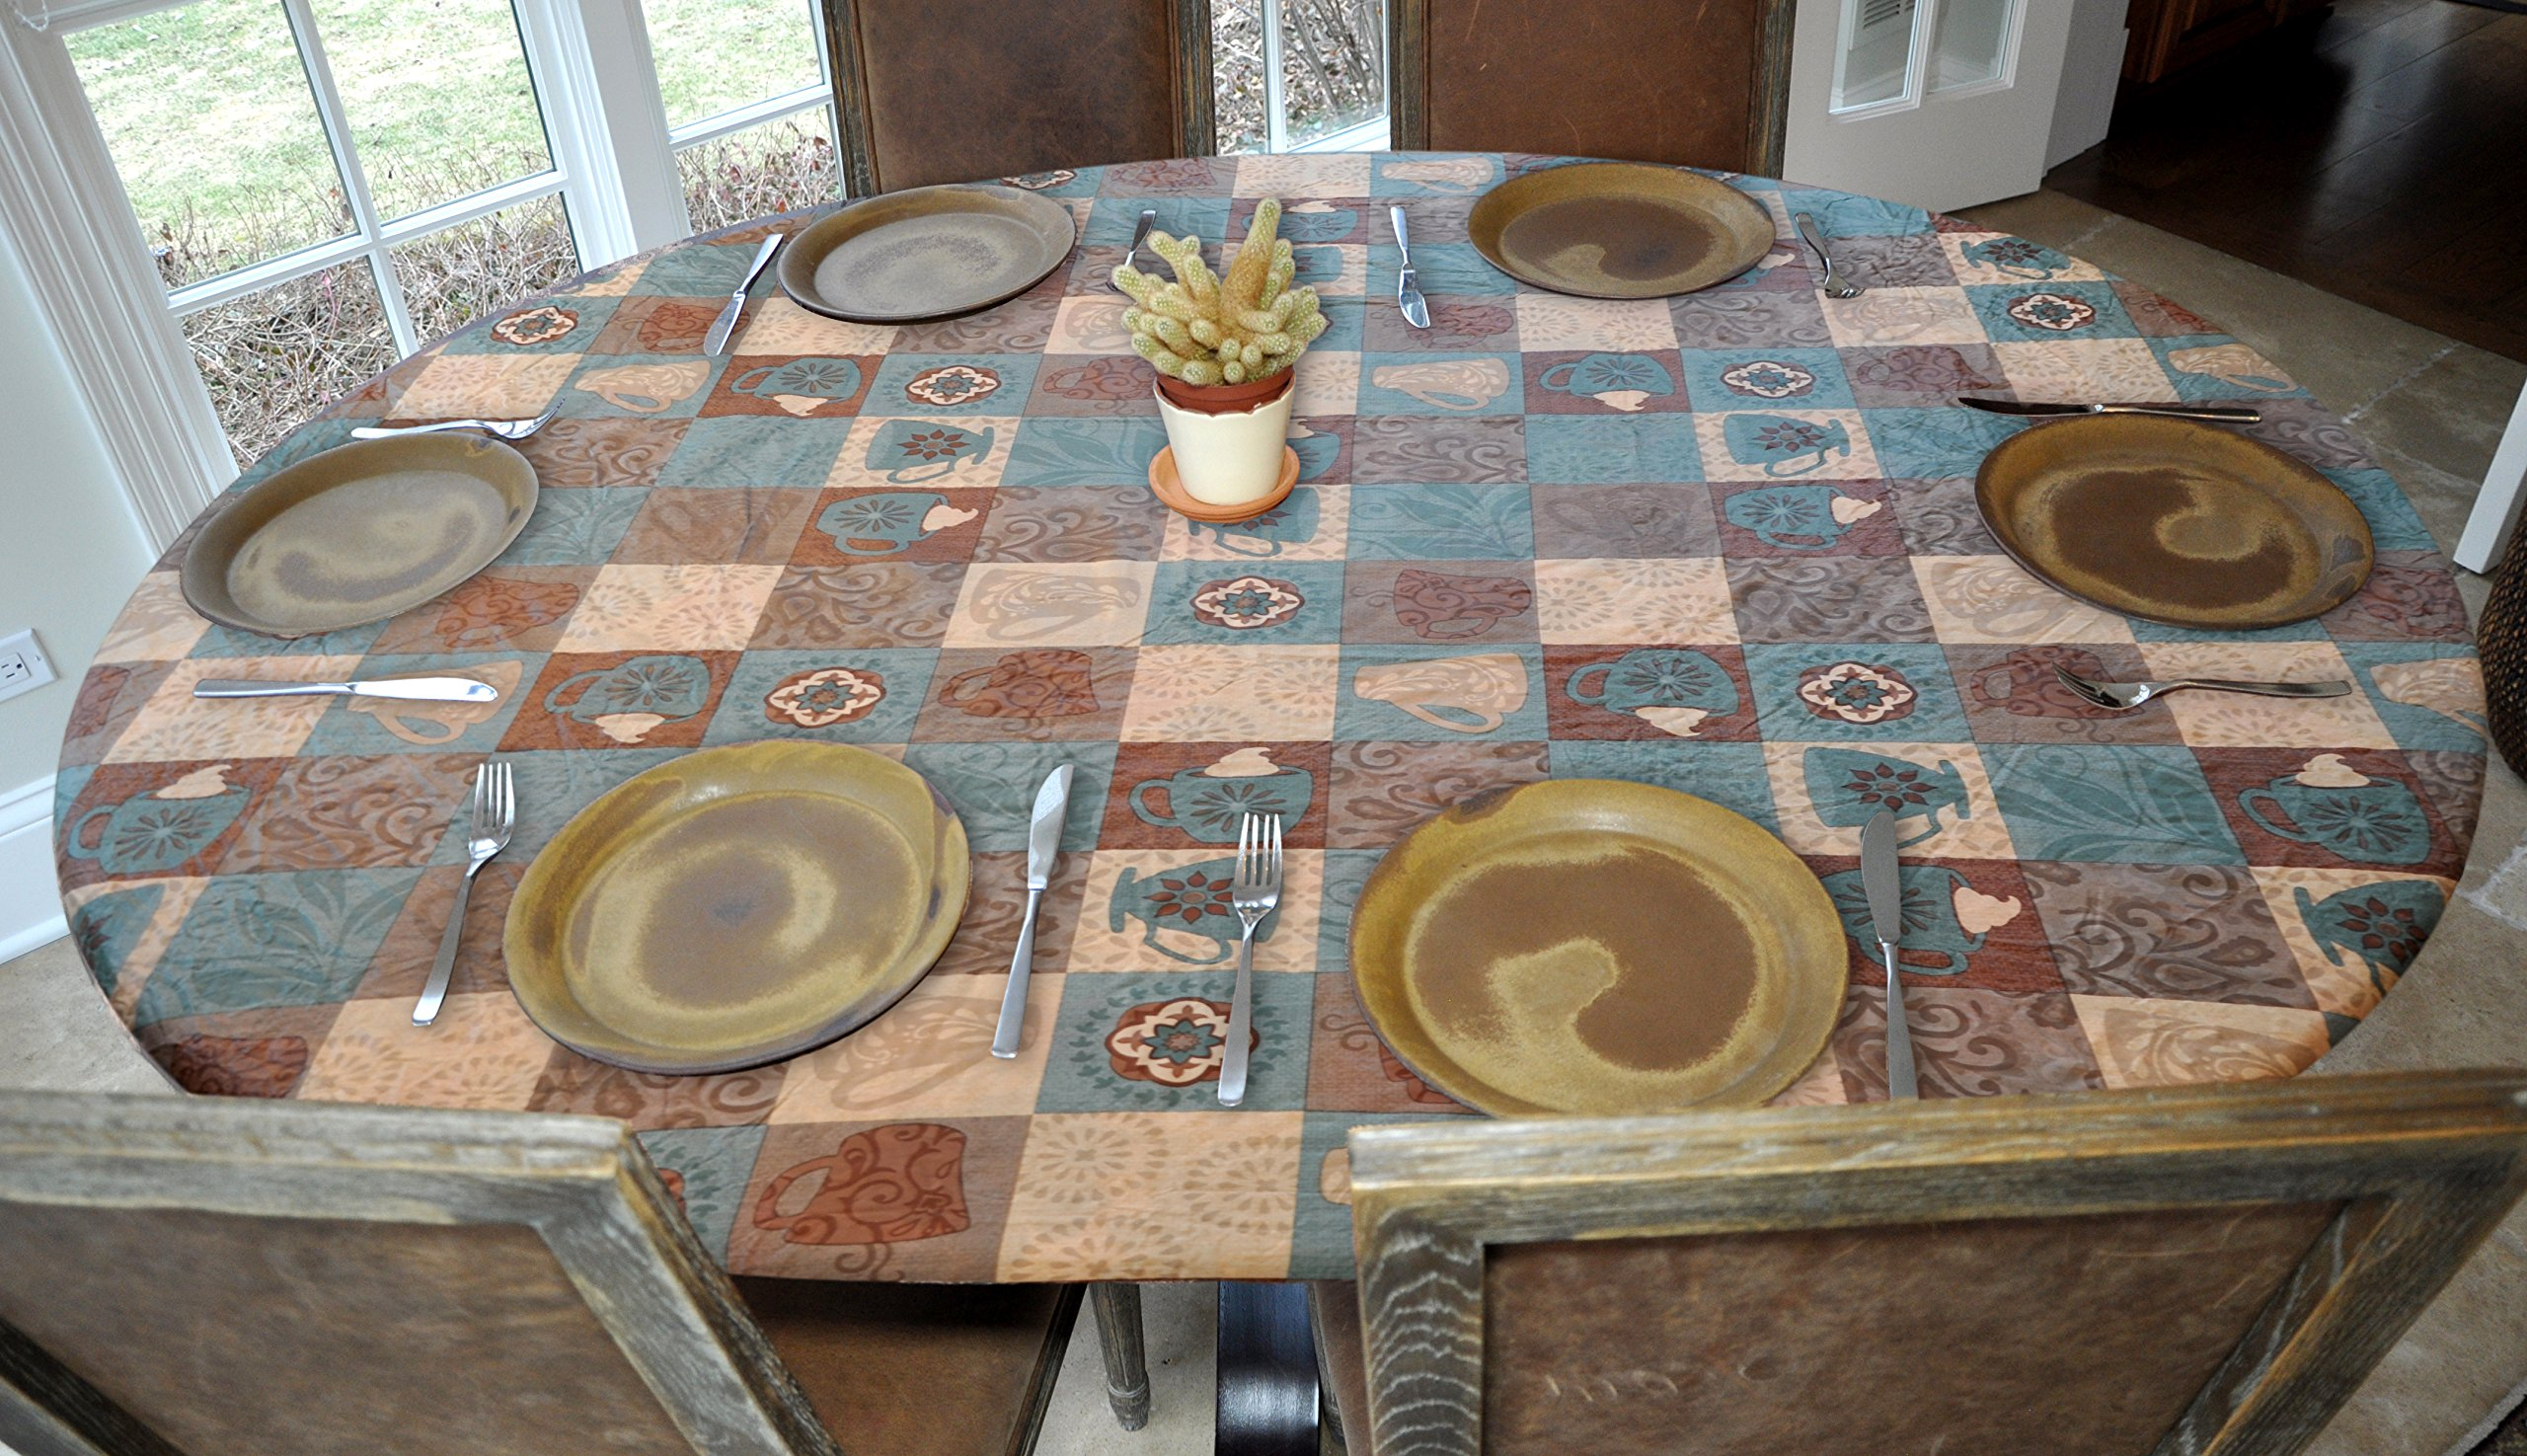 Elastic Edged Flannel Backed Vinyl Fitted Table Cover - GLOBAL COFFEE Pattern - Oblong/Oval - Fits tables up to 48'' x 68""